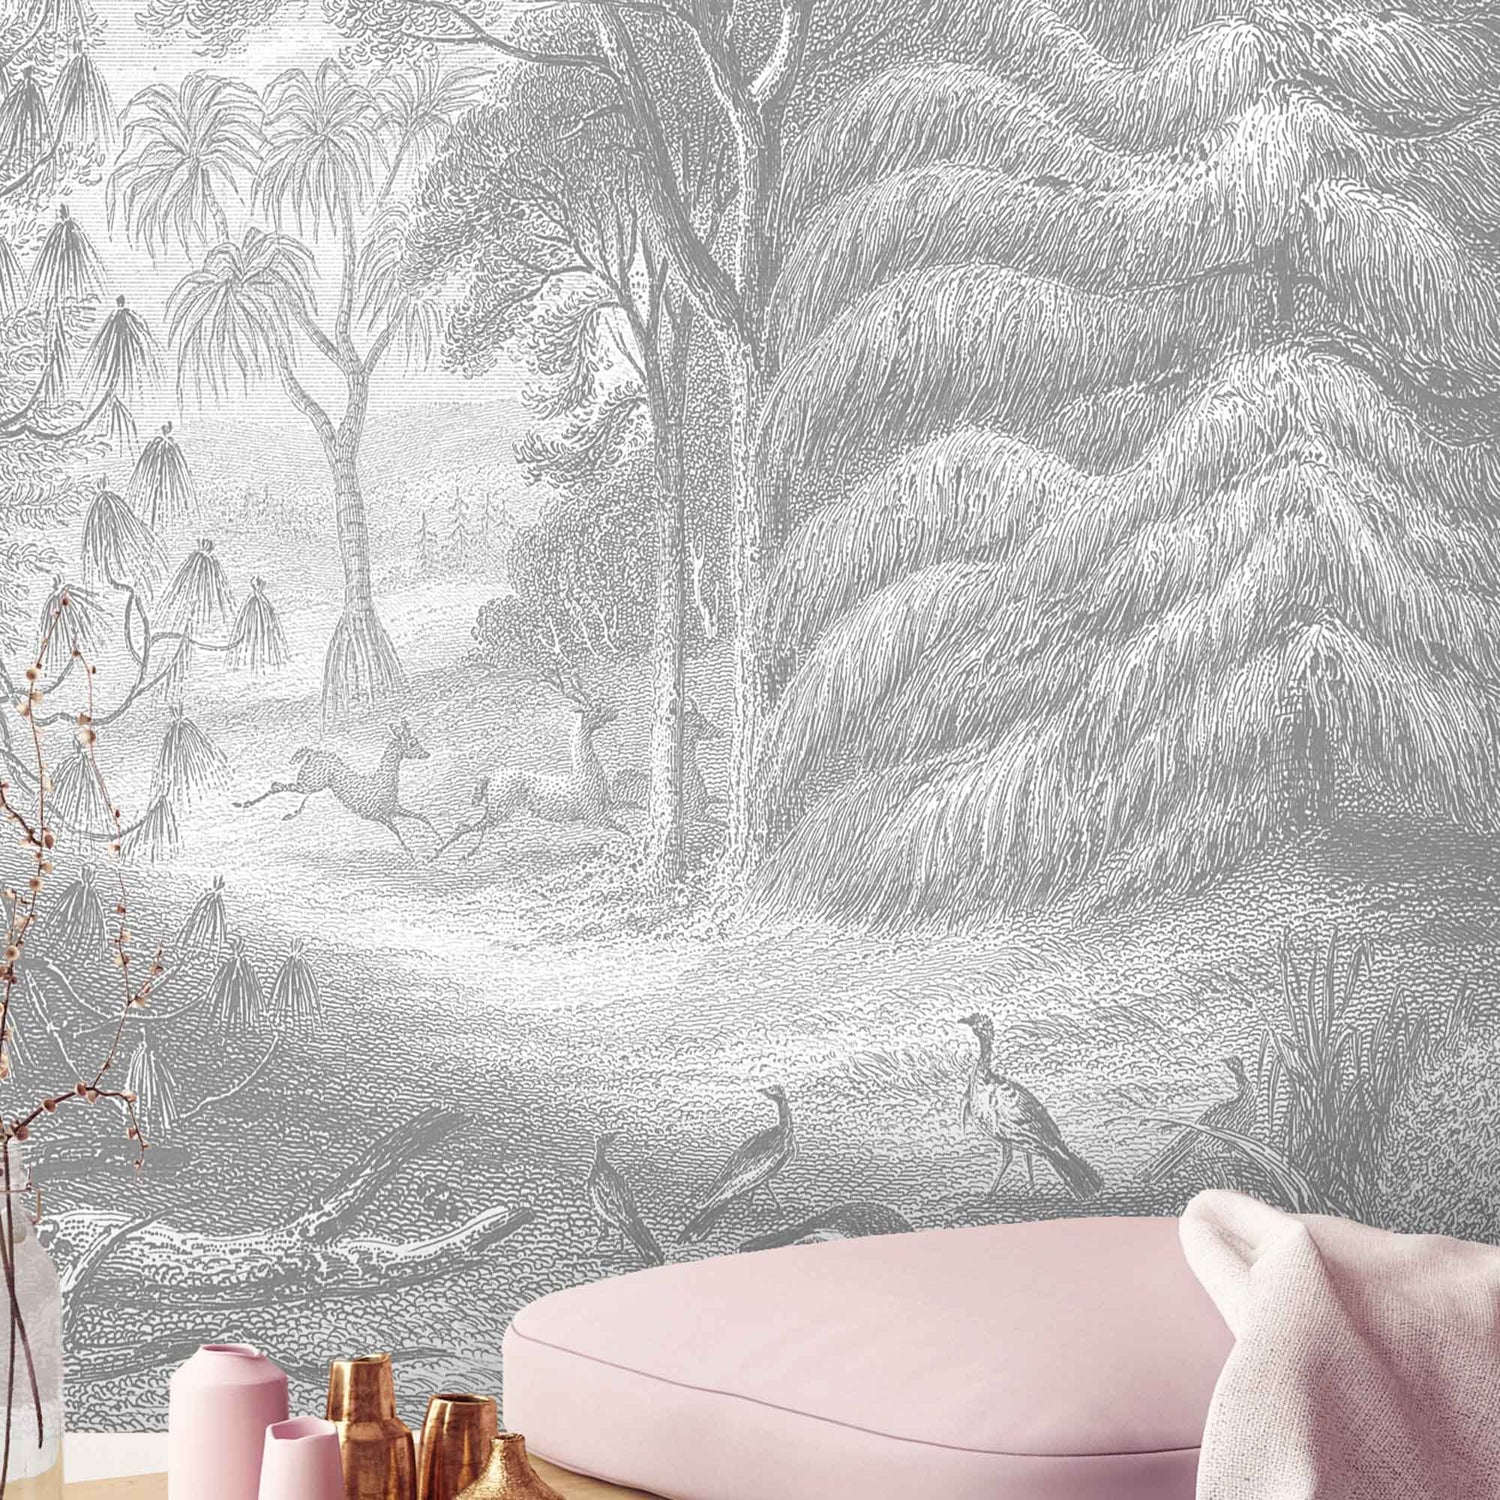 Land of Abundance Wallpaper Wall Mural